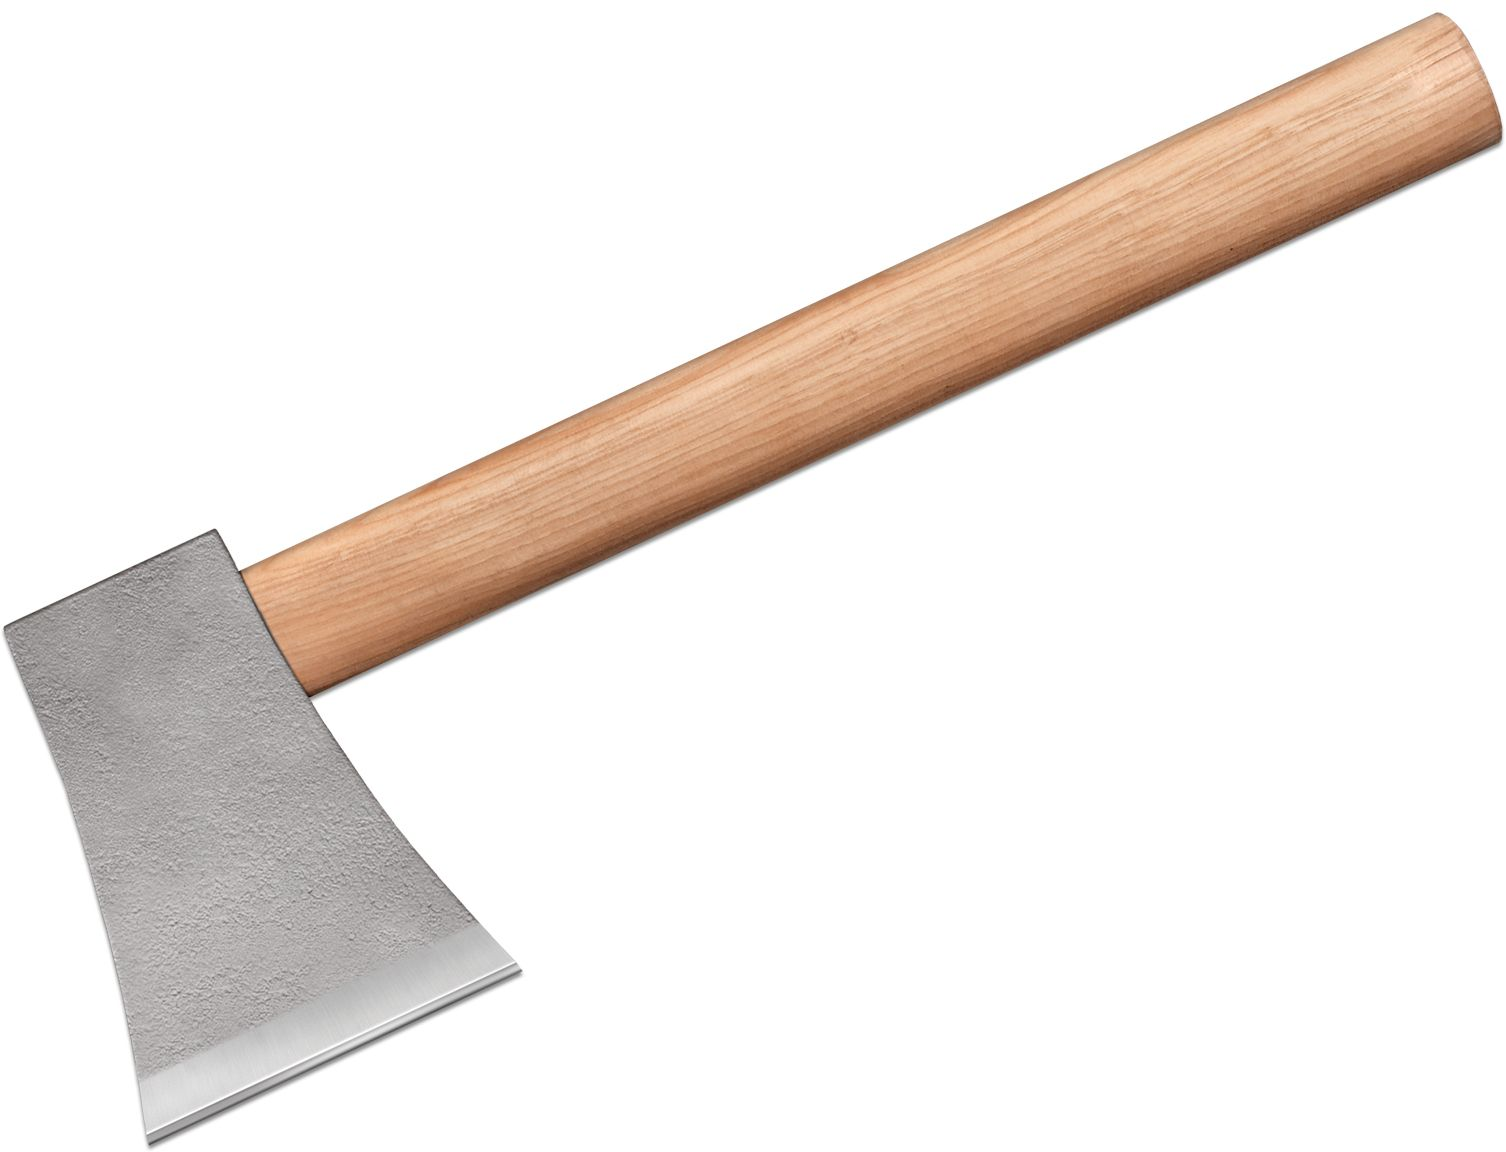 Cold Steel 90AXF Competition Throwing Hatchet 16 inch Overall - NATF and WATL Compliant